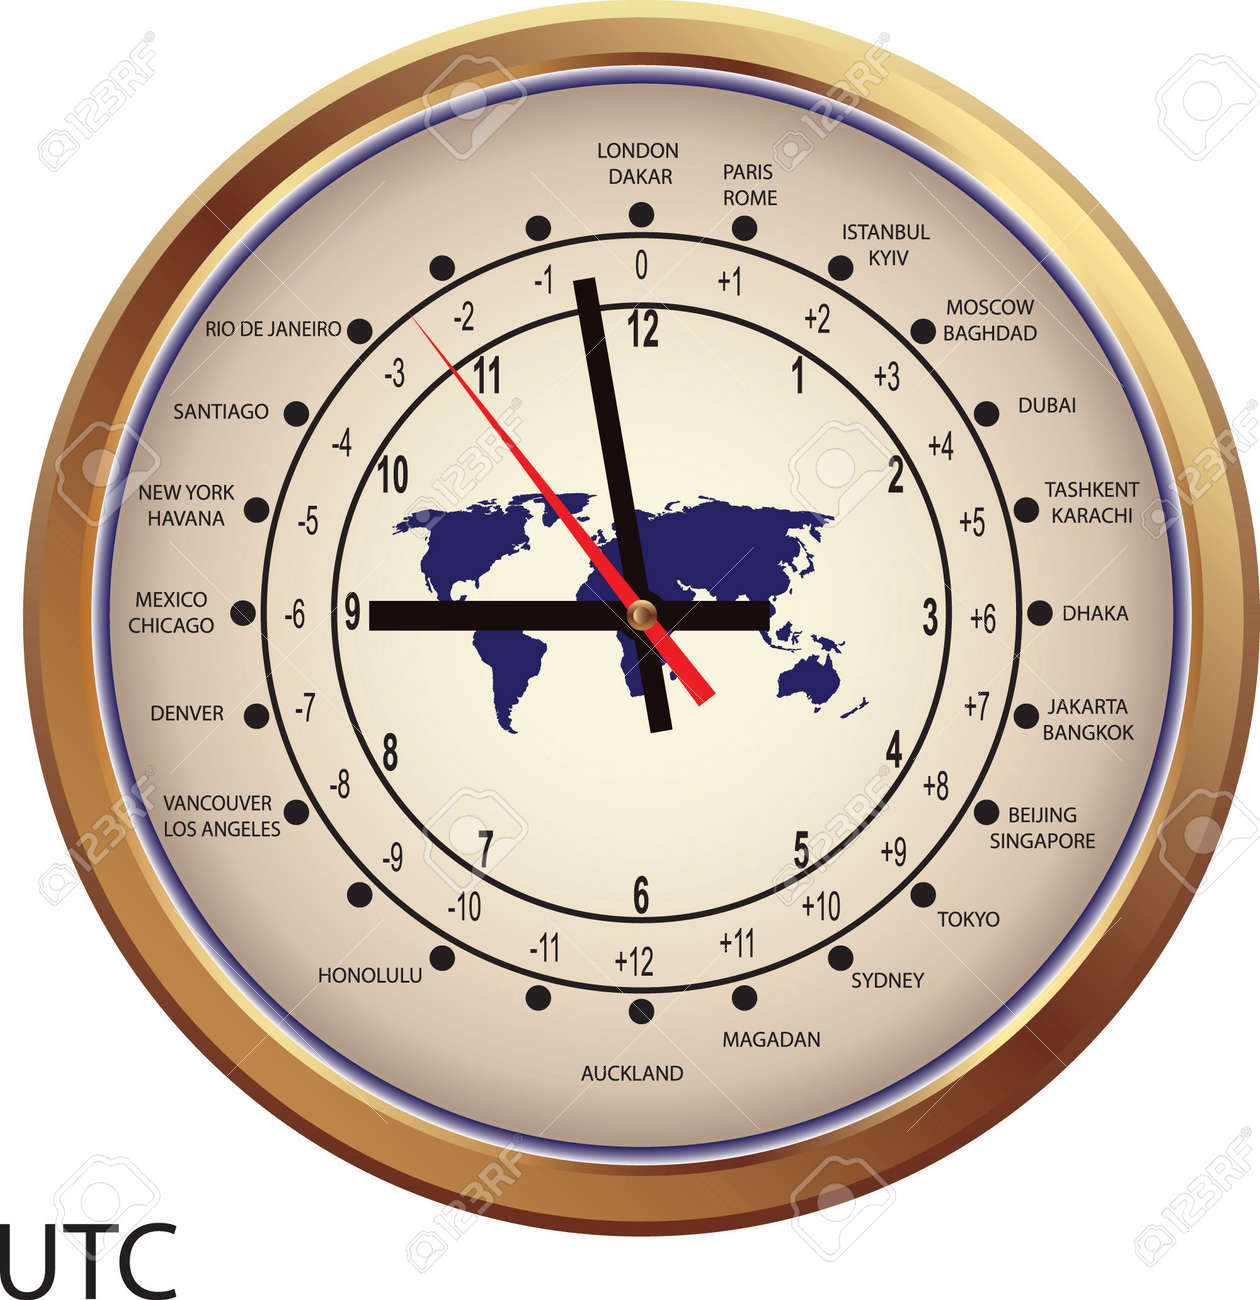 Time Zone Map Stock Illustrations Cliparts And Royalty Free - Chicago map time zone